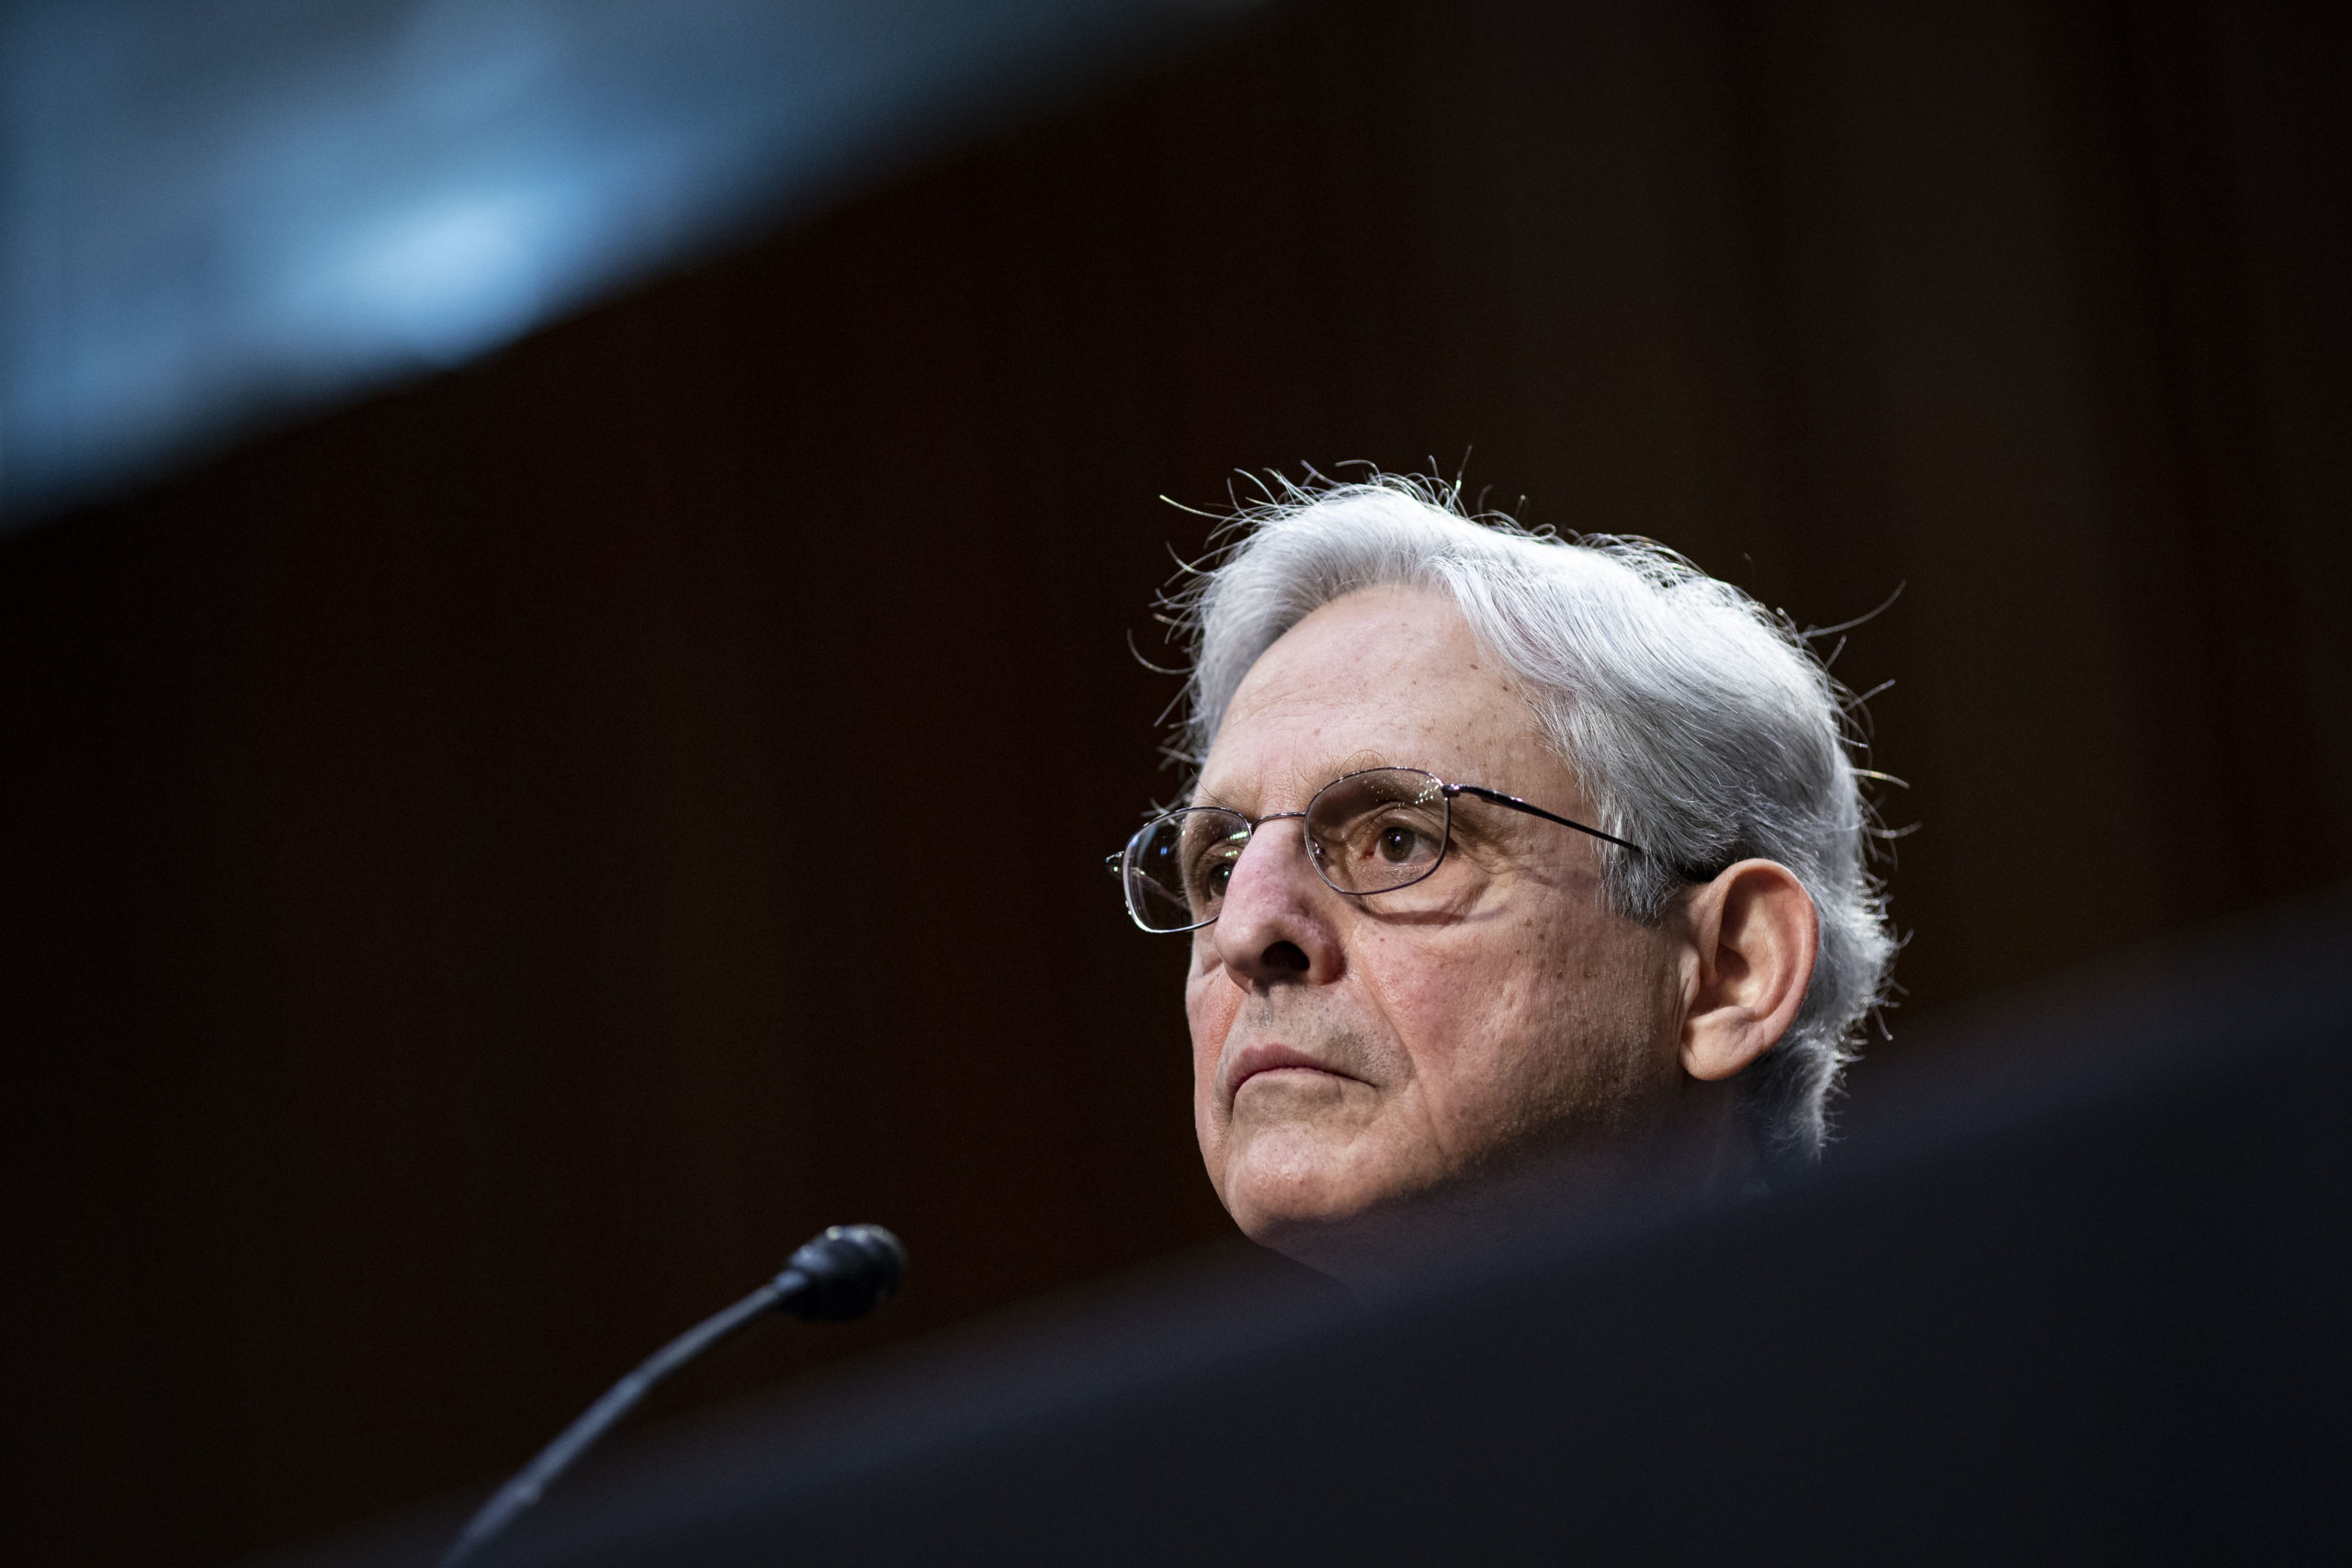 Attorney General nominee Merrick Garland listens during his confirmation hearing before the Senate Judiciary Committee in the Hart Senate Office Building on February 22, 2021 in Washington, DC. (Al Drago/Getty Images)